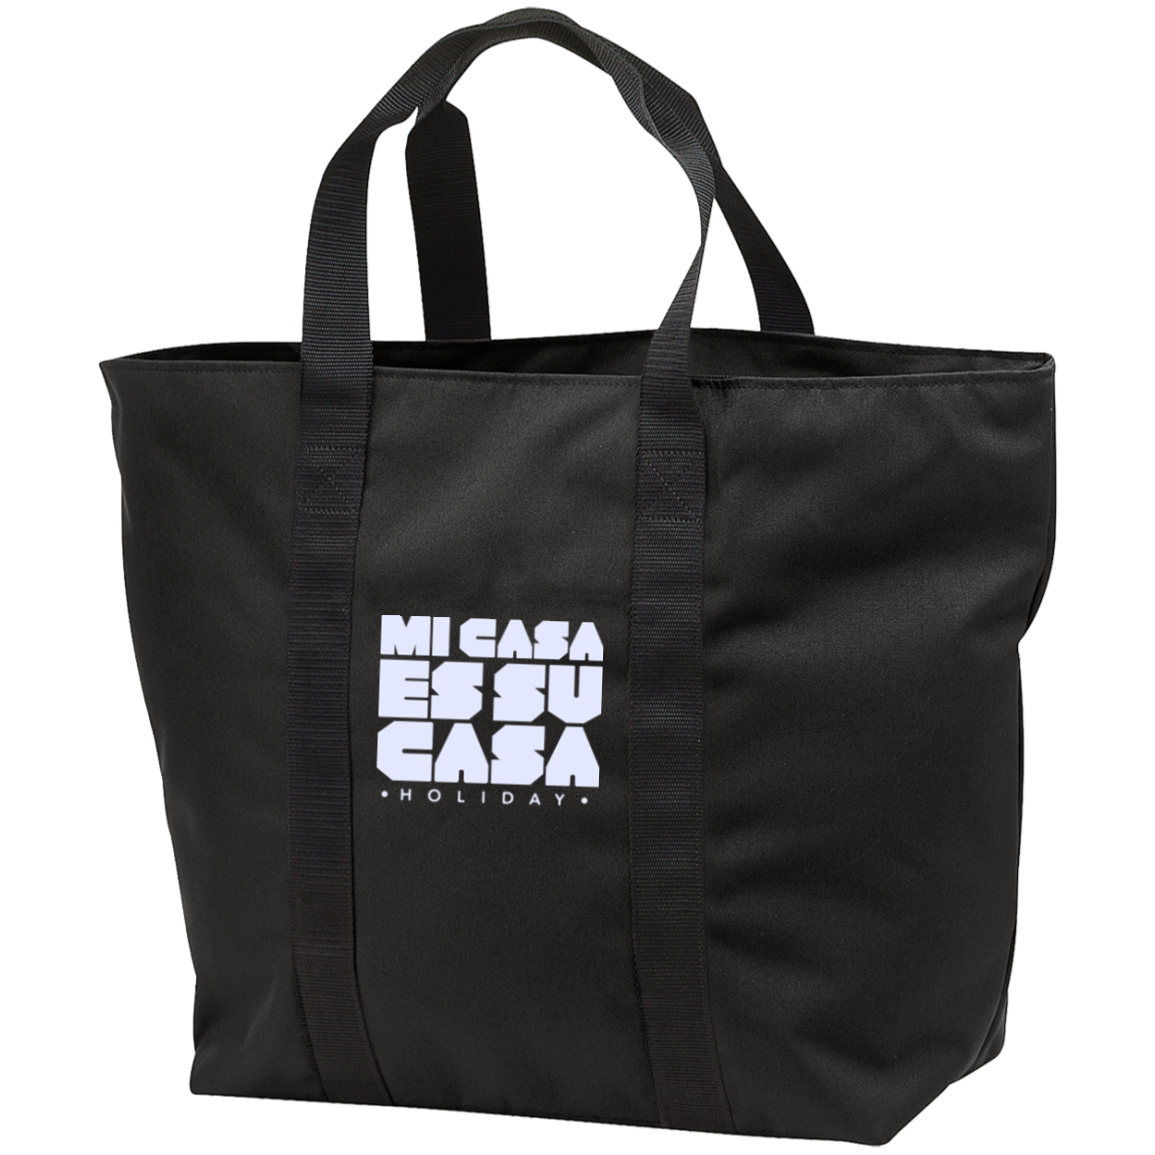 Classic Mi Casa Holiday All Purpose Tote Bag- White Embroidery